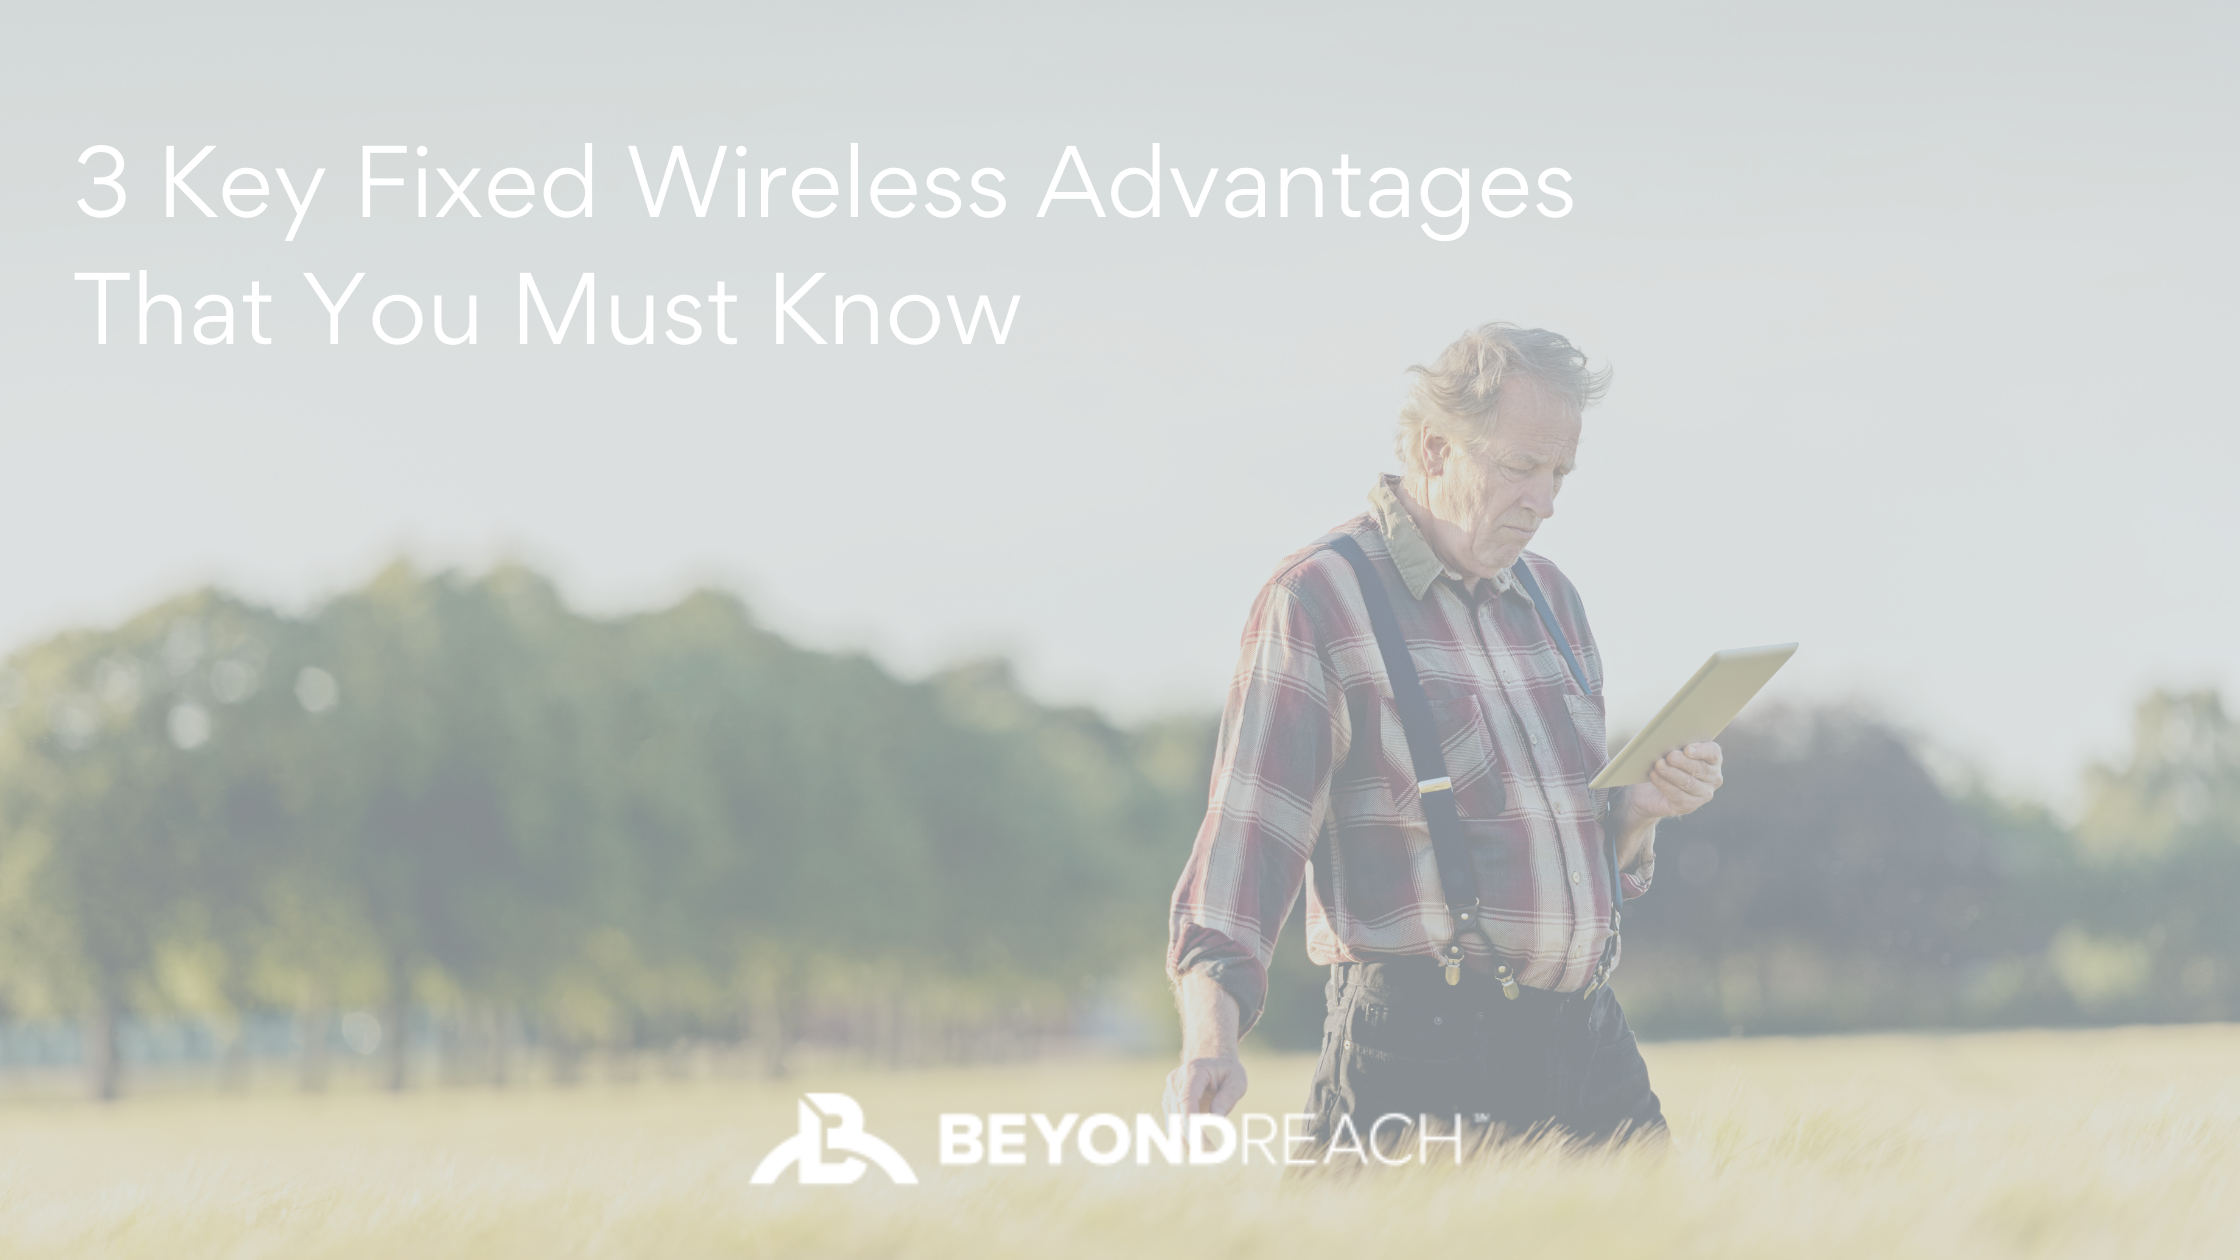 Advantages to Fixed Wireless